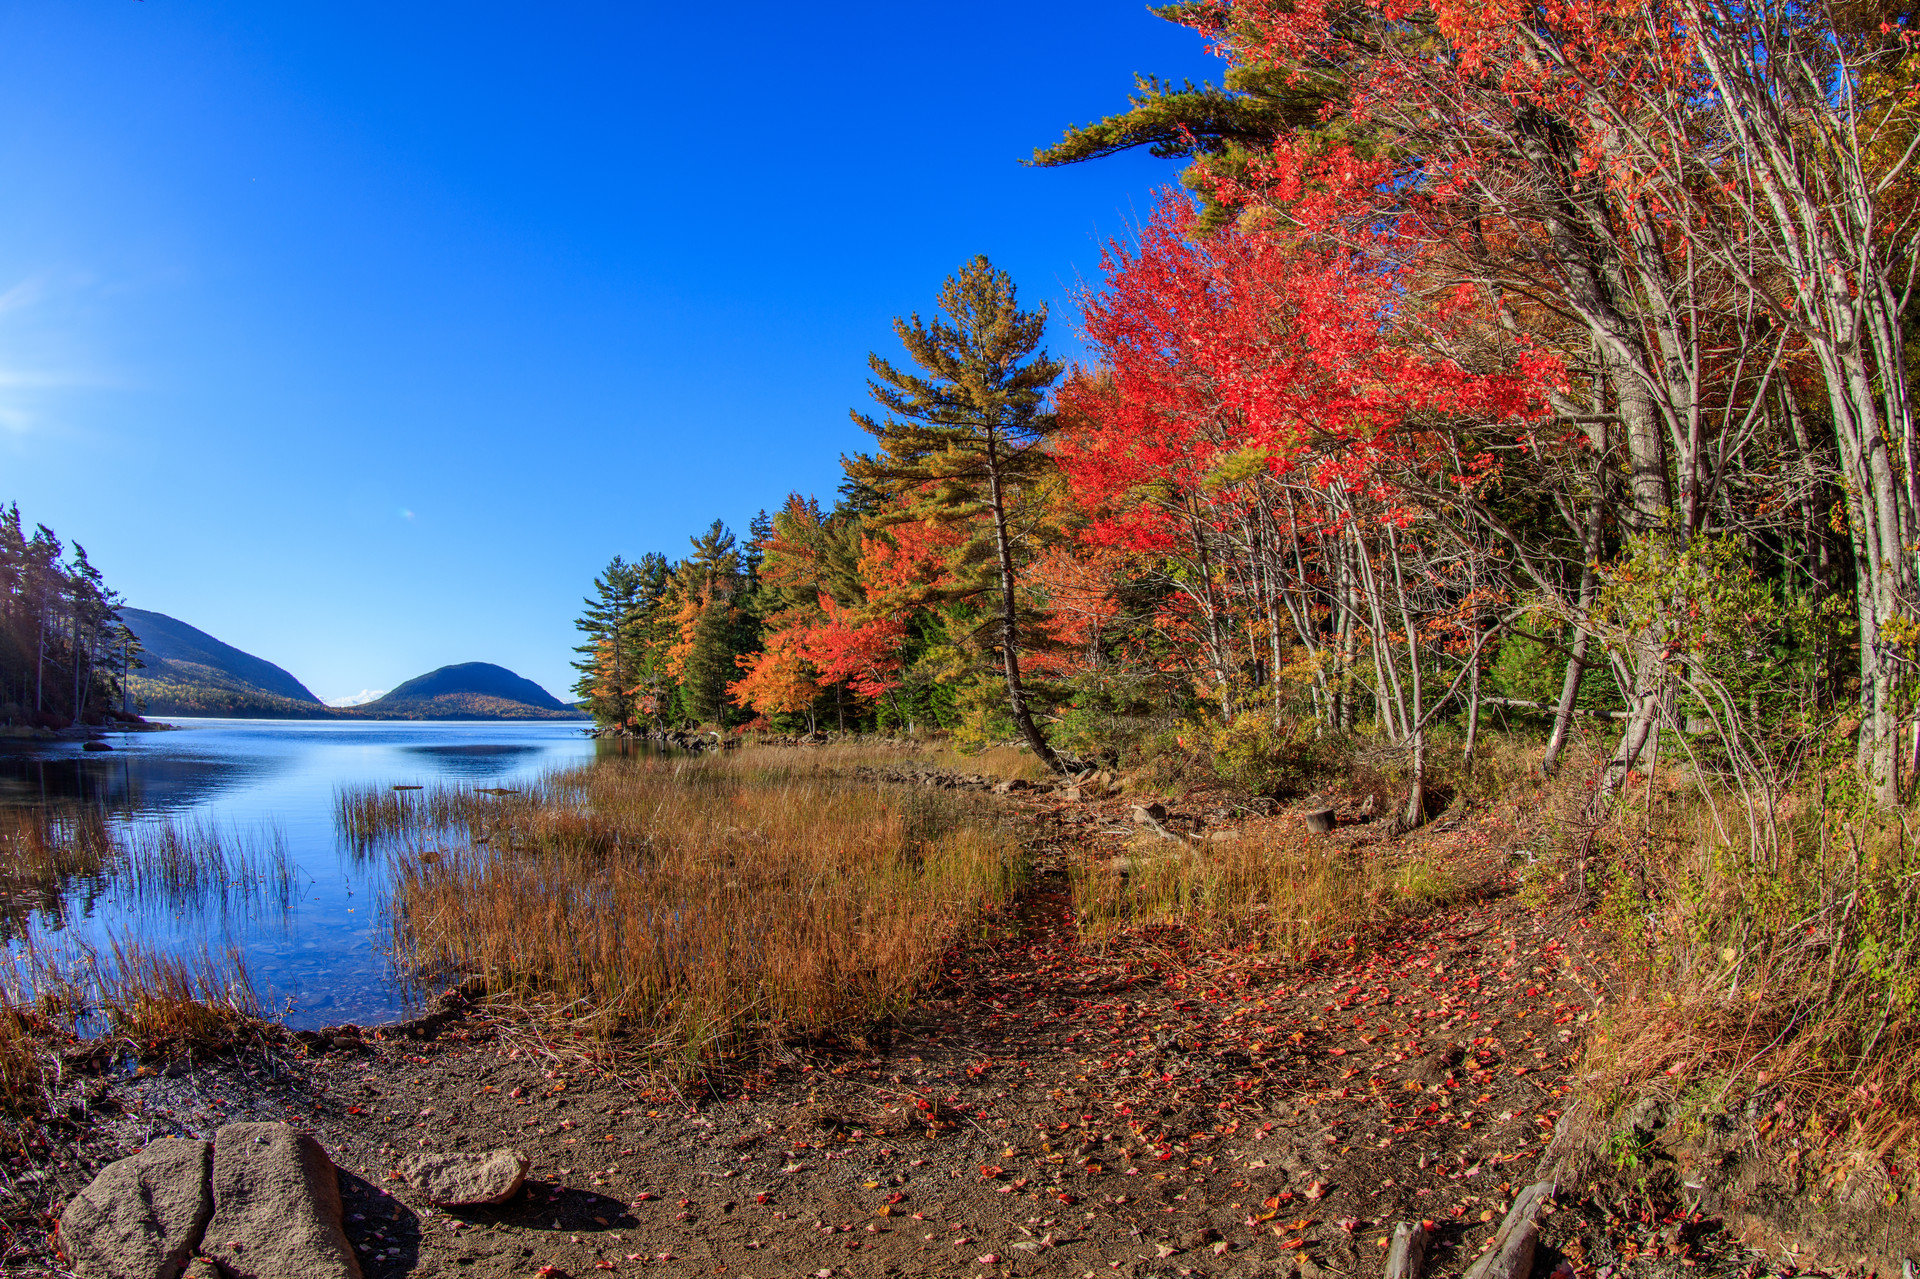 Boutique Hotels Fall fall colors Fall leaves fall season Food + Drink Forest Hotels landscape Mountains Natural wonders Nature Outdoors + Adventure reflection River shore trees Weekend Getaways woods outdoor tree sky grass wilderness ecosystem season autumn leaf mountain Lake morning plant woodland pond flower bushes hillside surrounded wooded highland